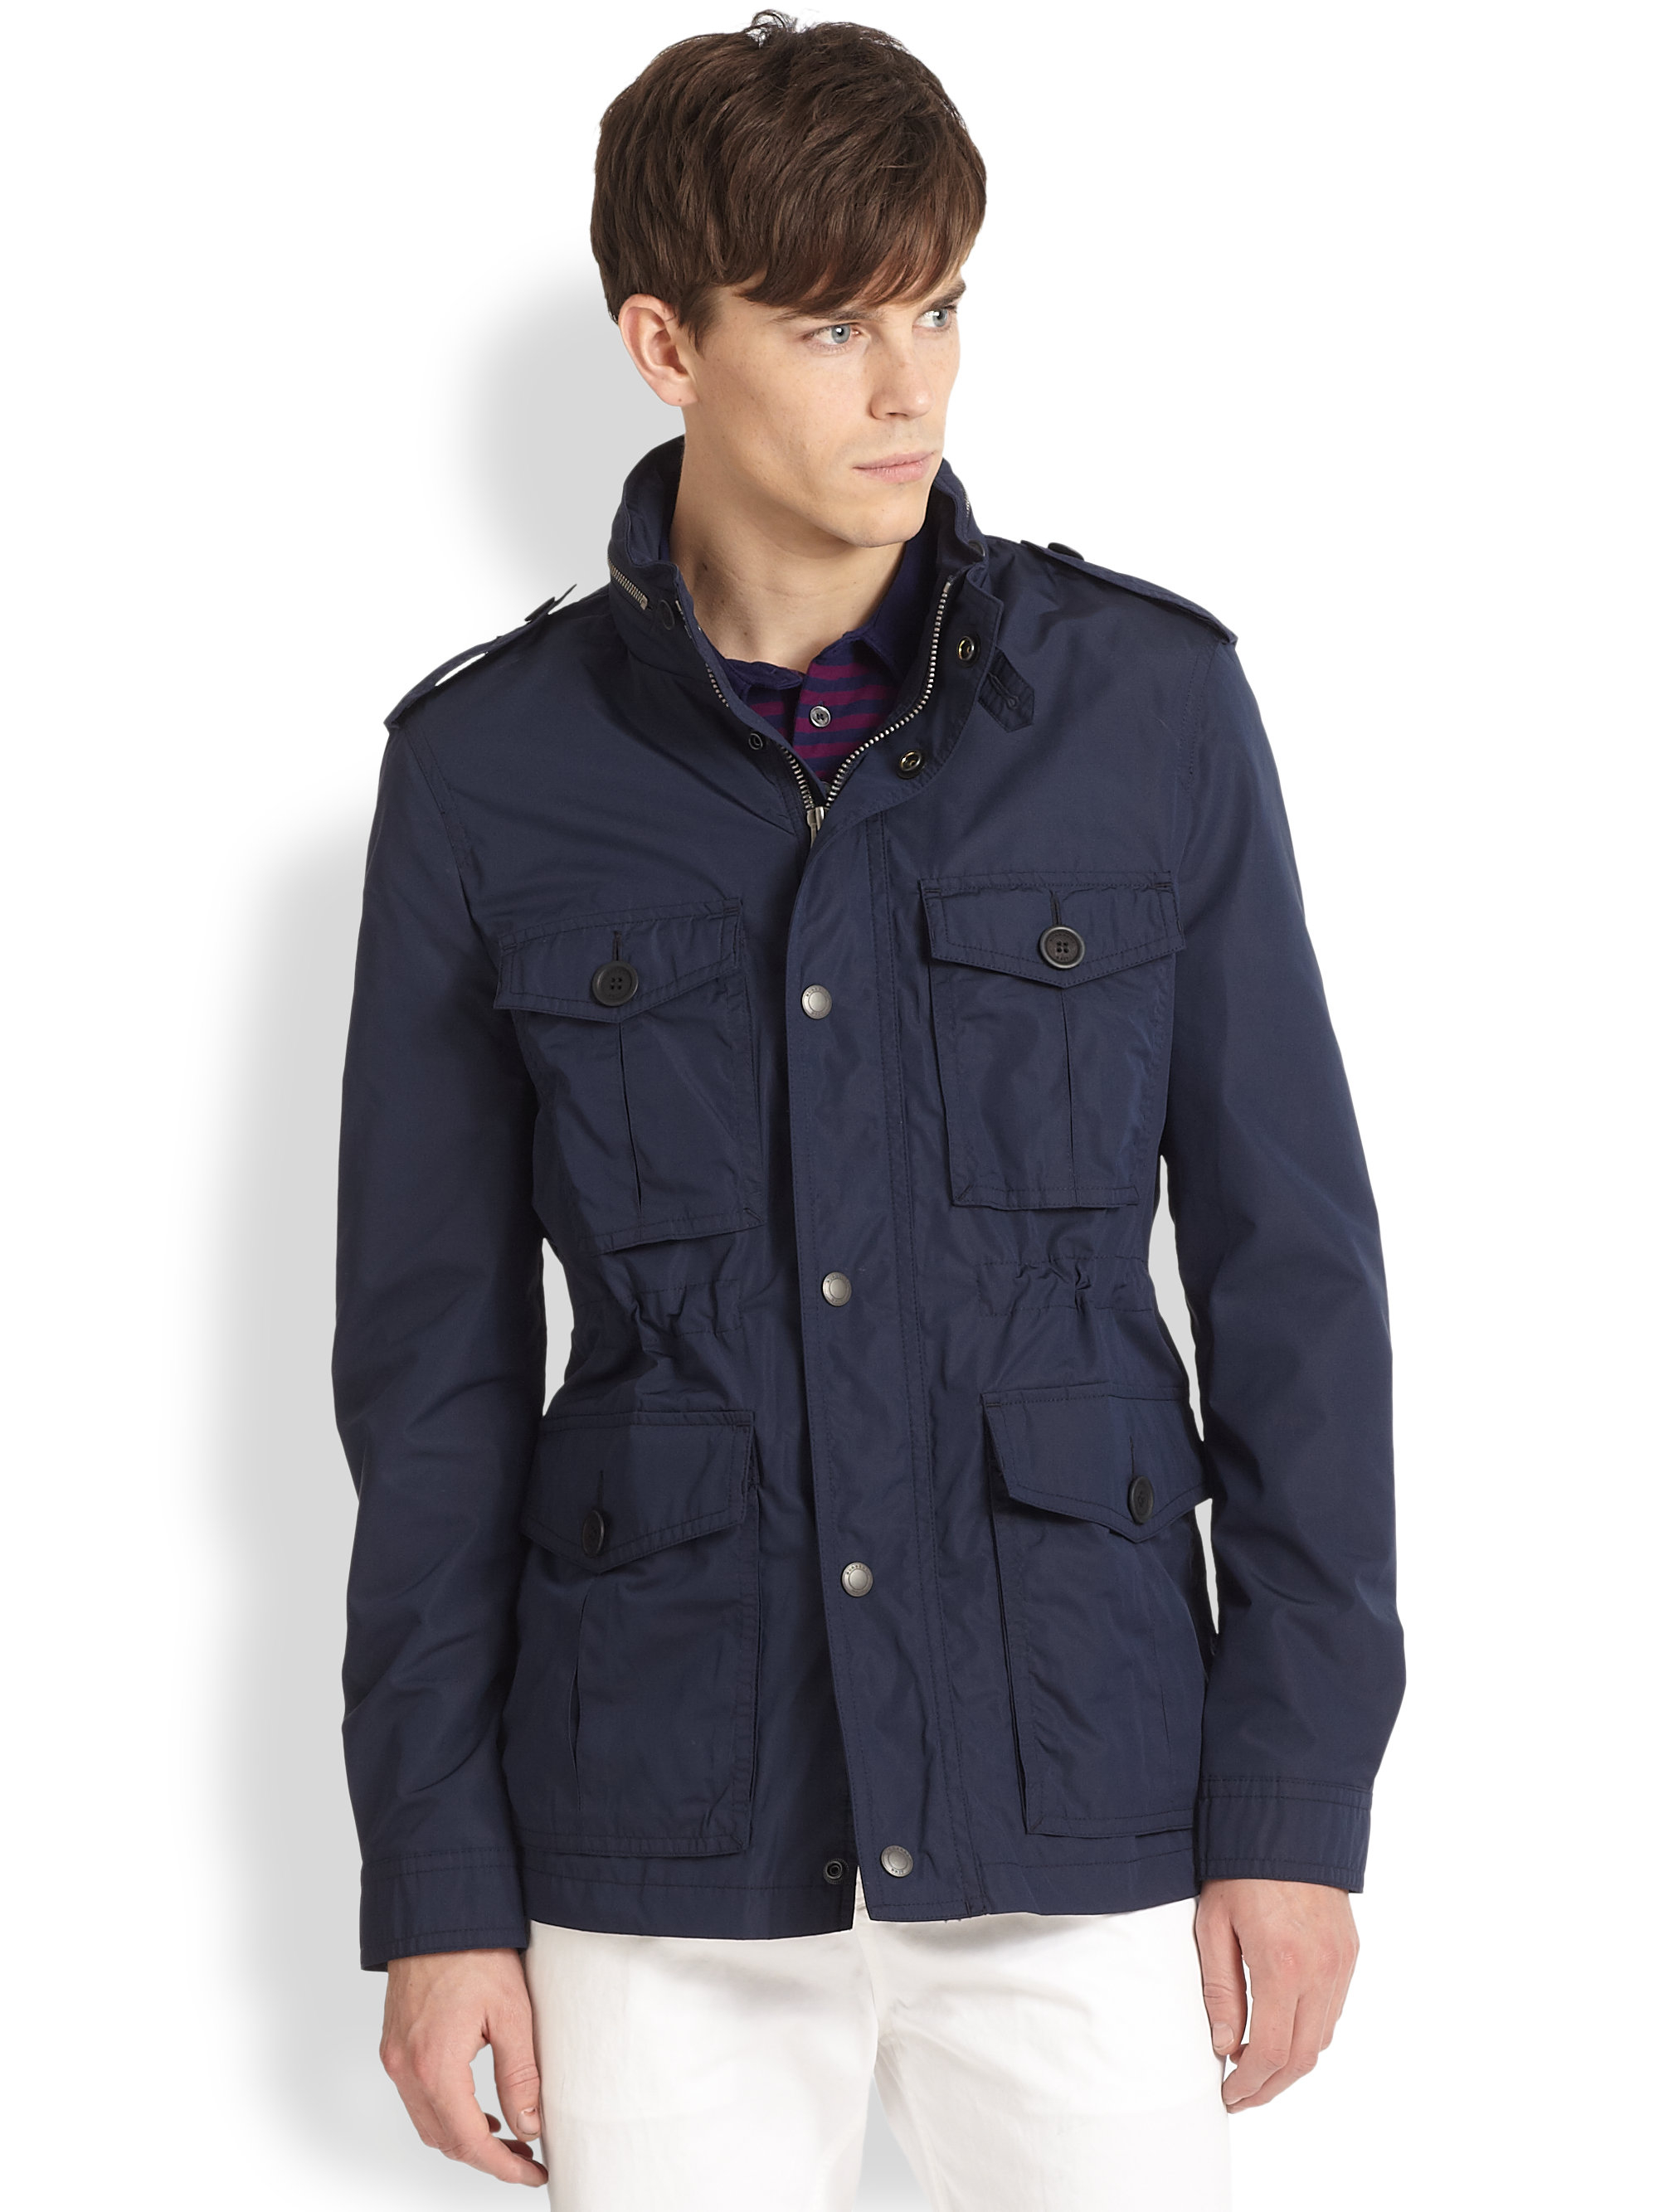 Navy Blue Utility Jacket